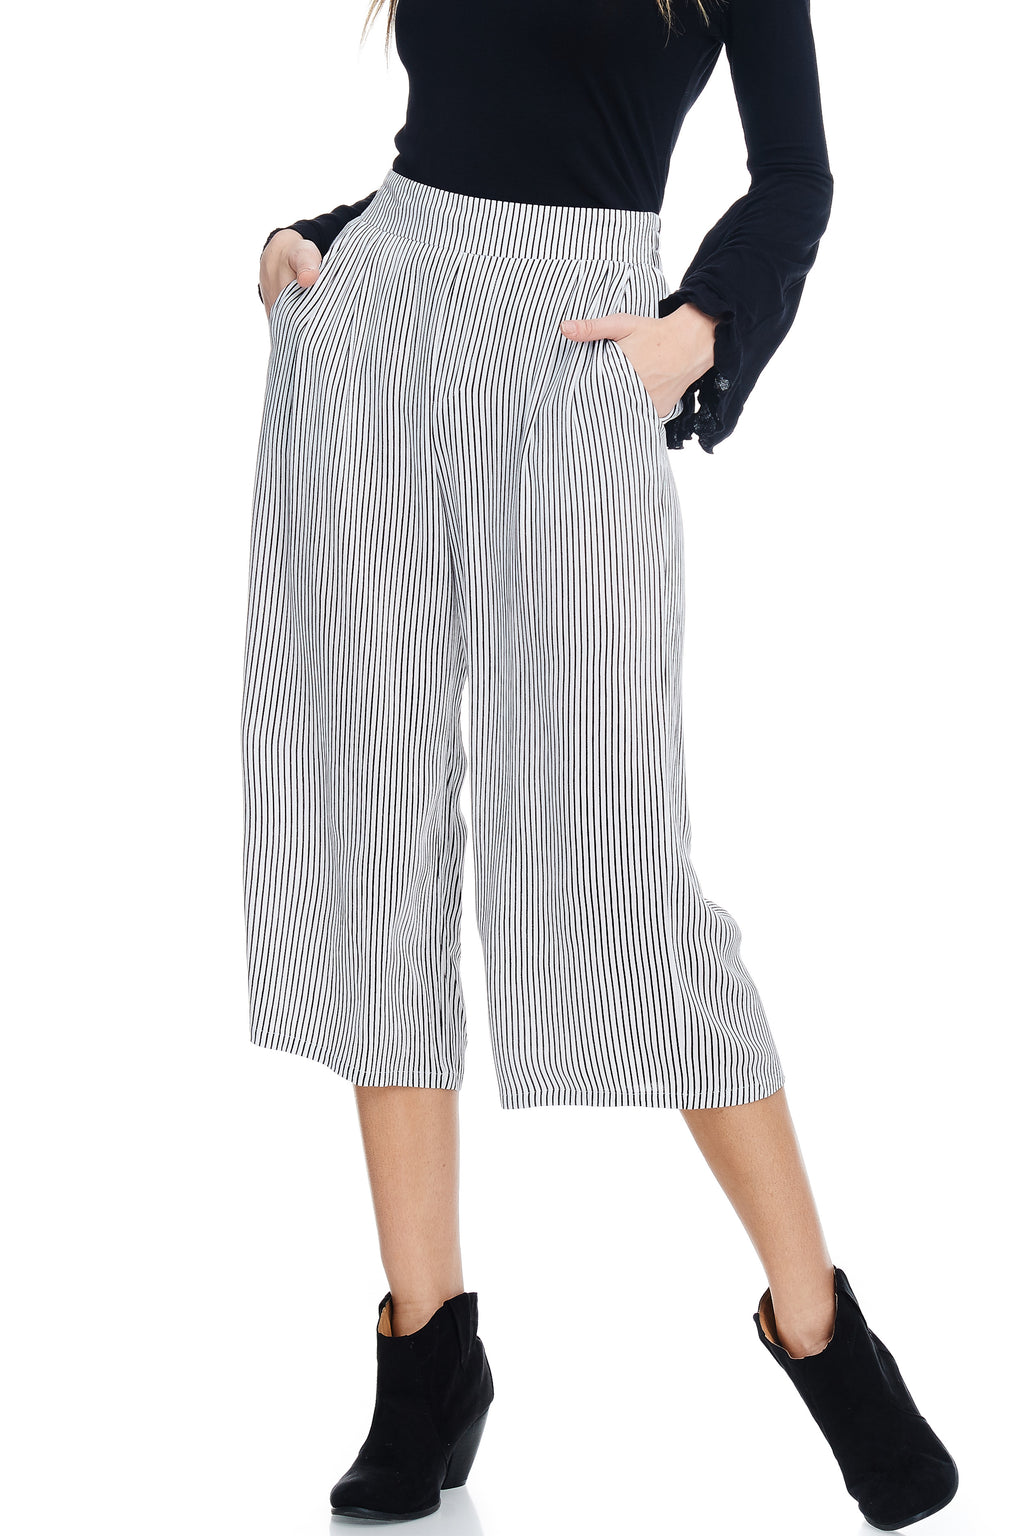 W18-093 Striped Culottes